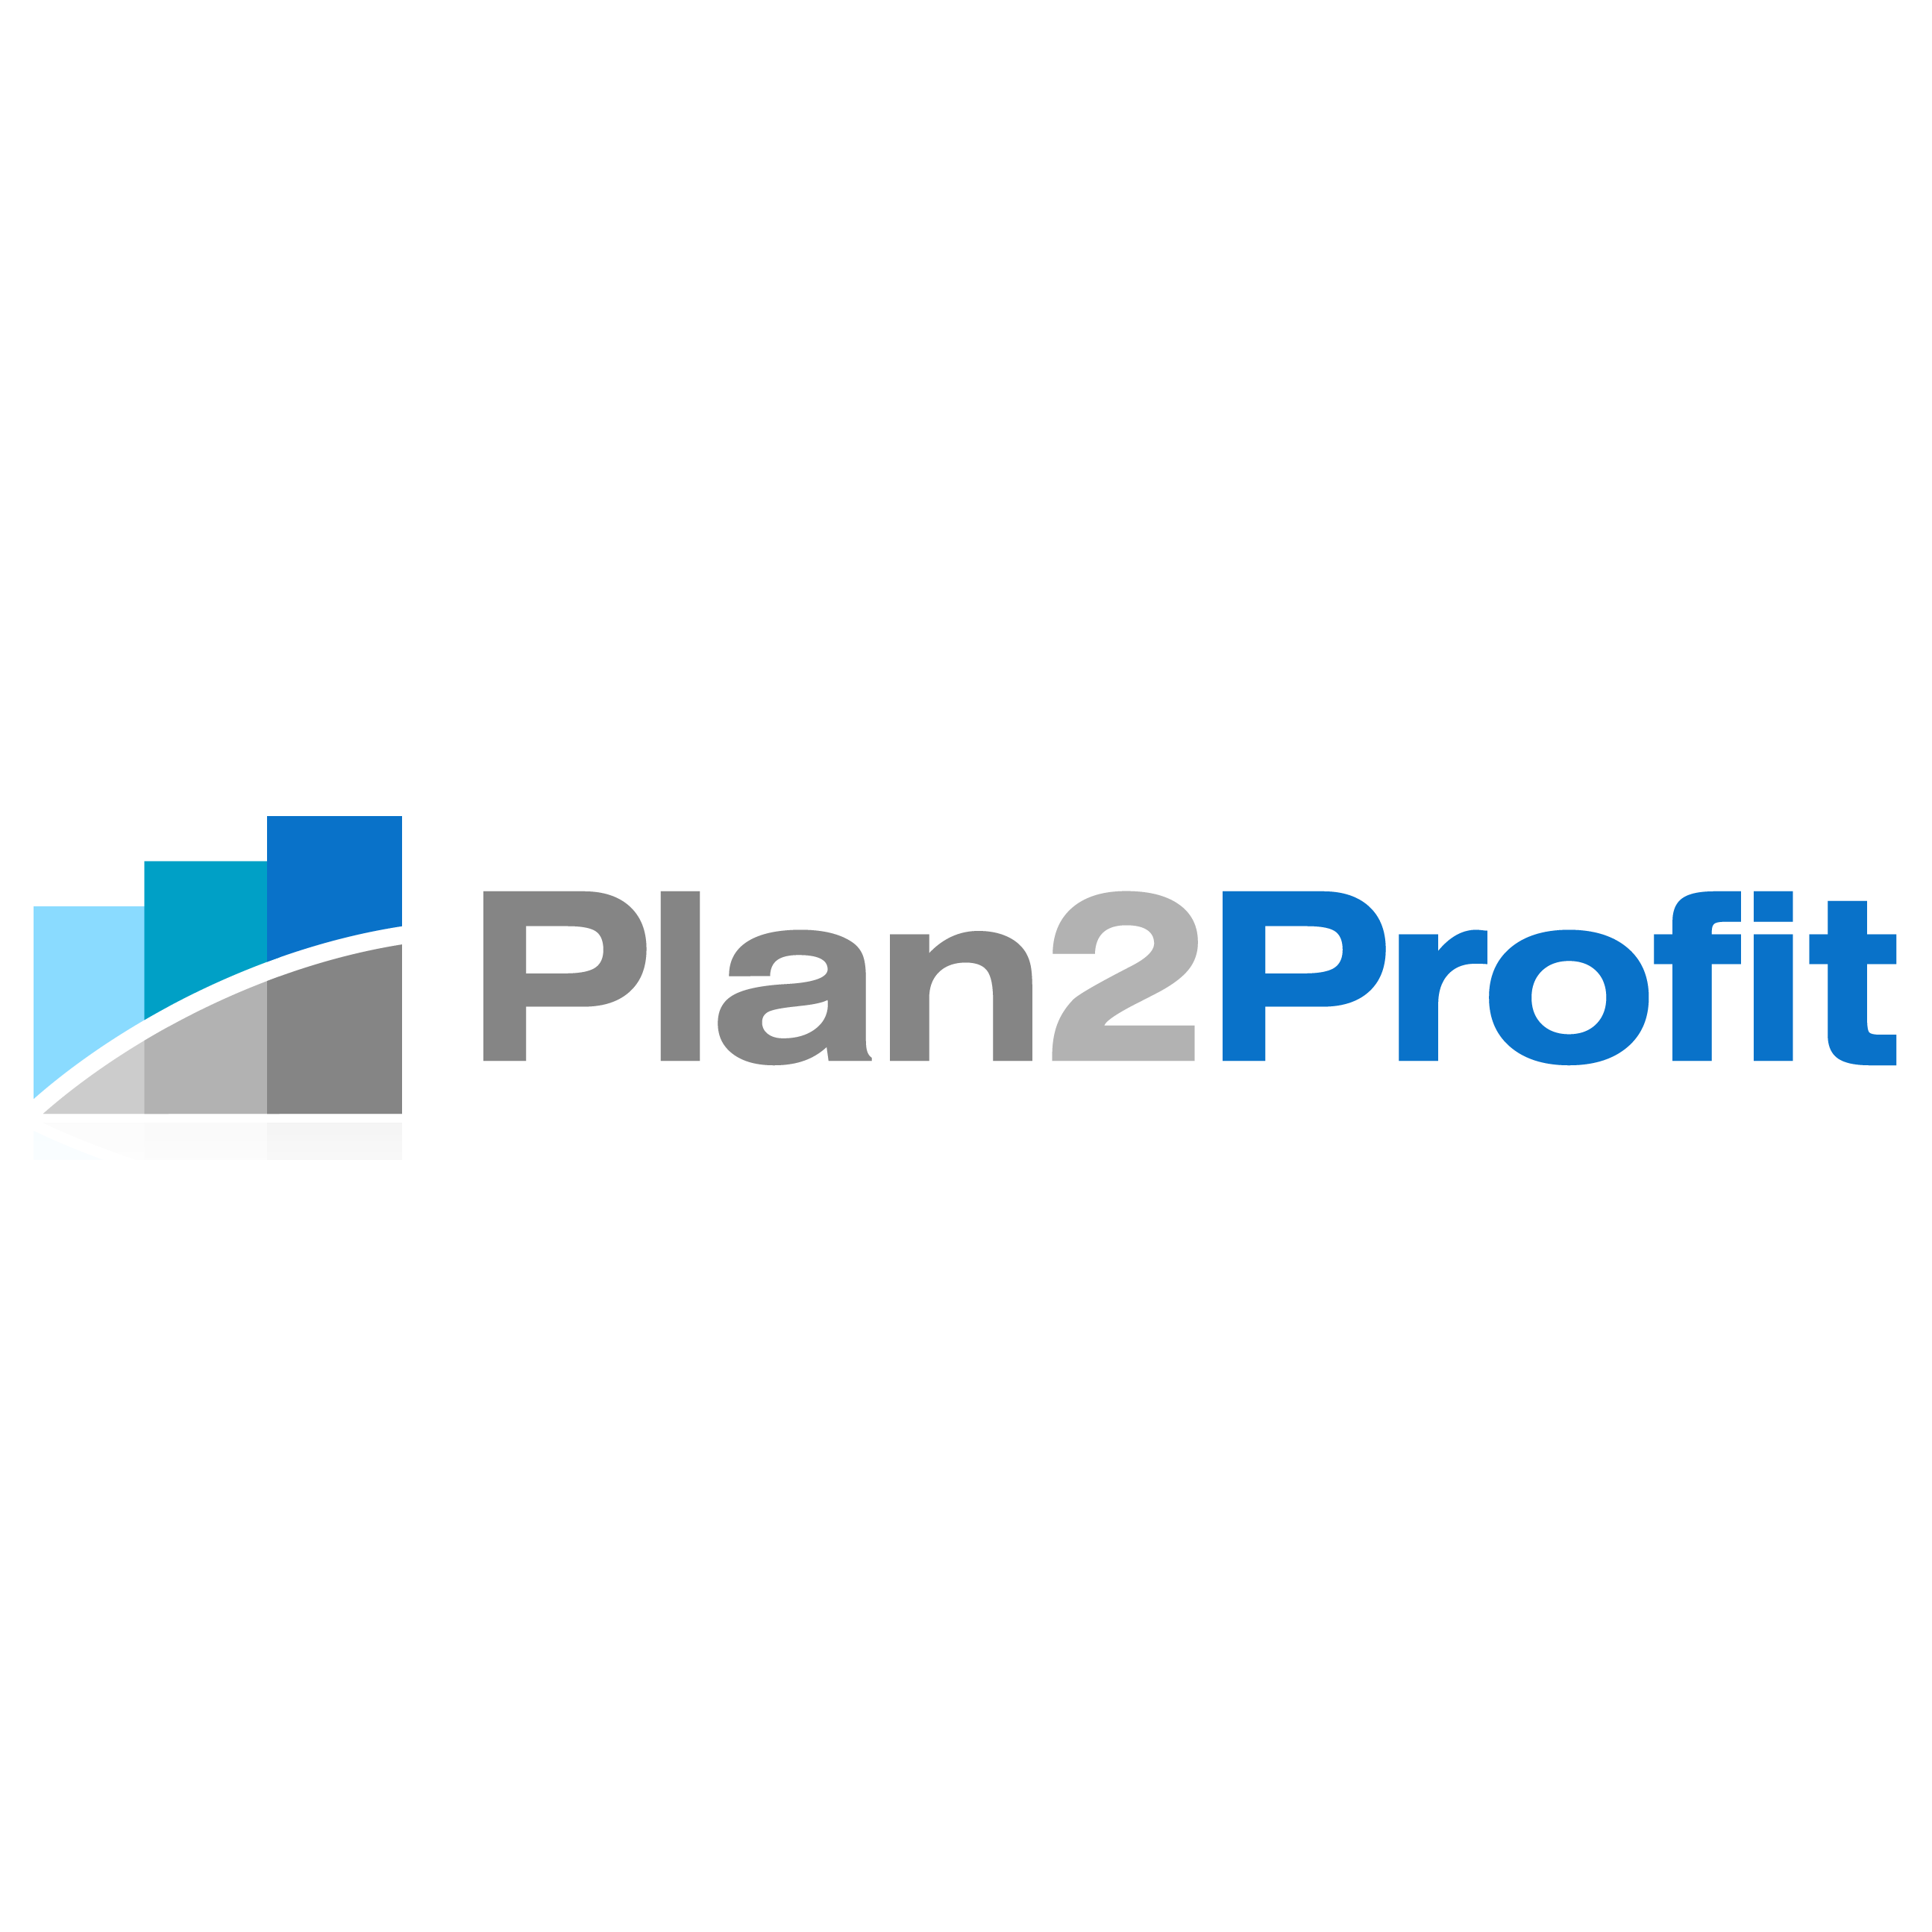 Plan2Profit LLC